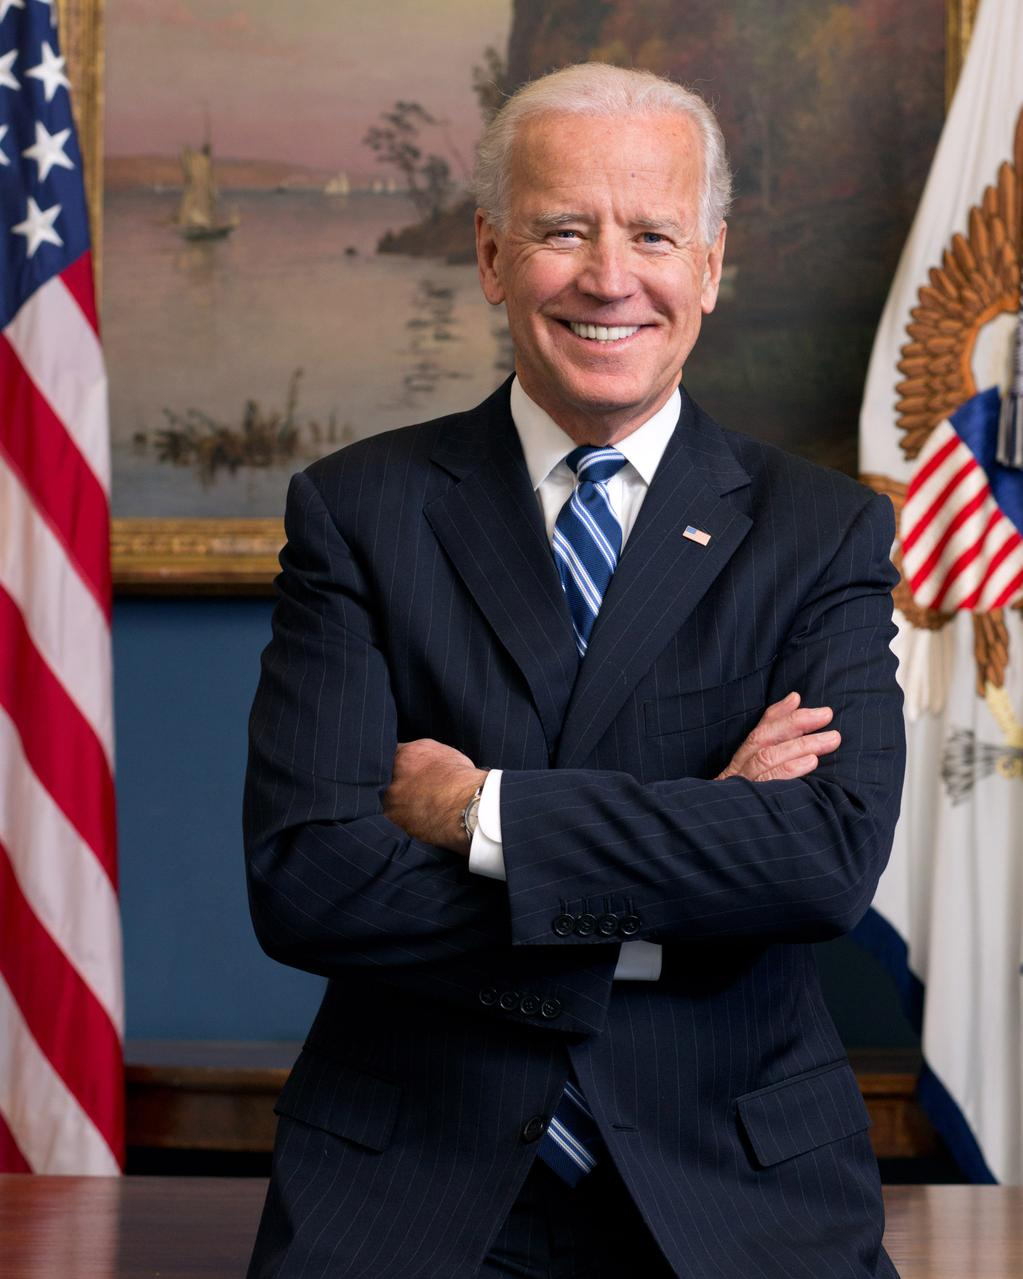 Honored to have the Vice President of the United States @VP Joe Biden address the 2015 @ConcordiaSummit #Concordia15 http://t.co/WP8idq91HU